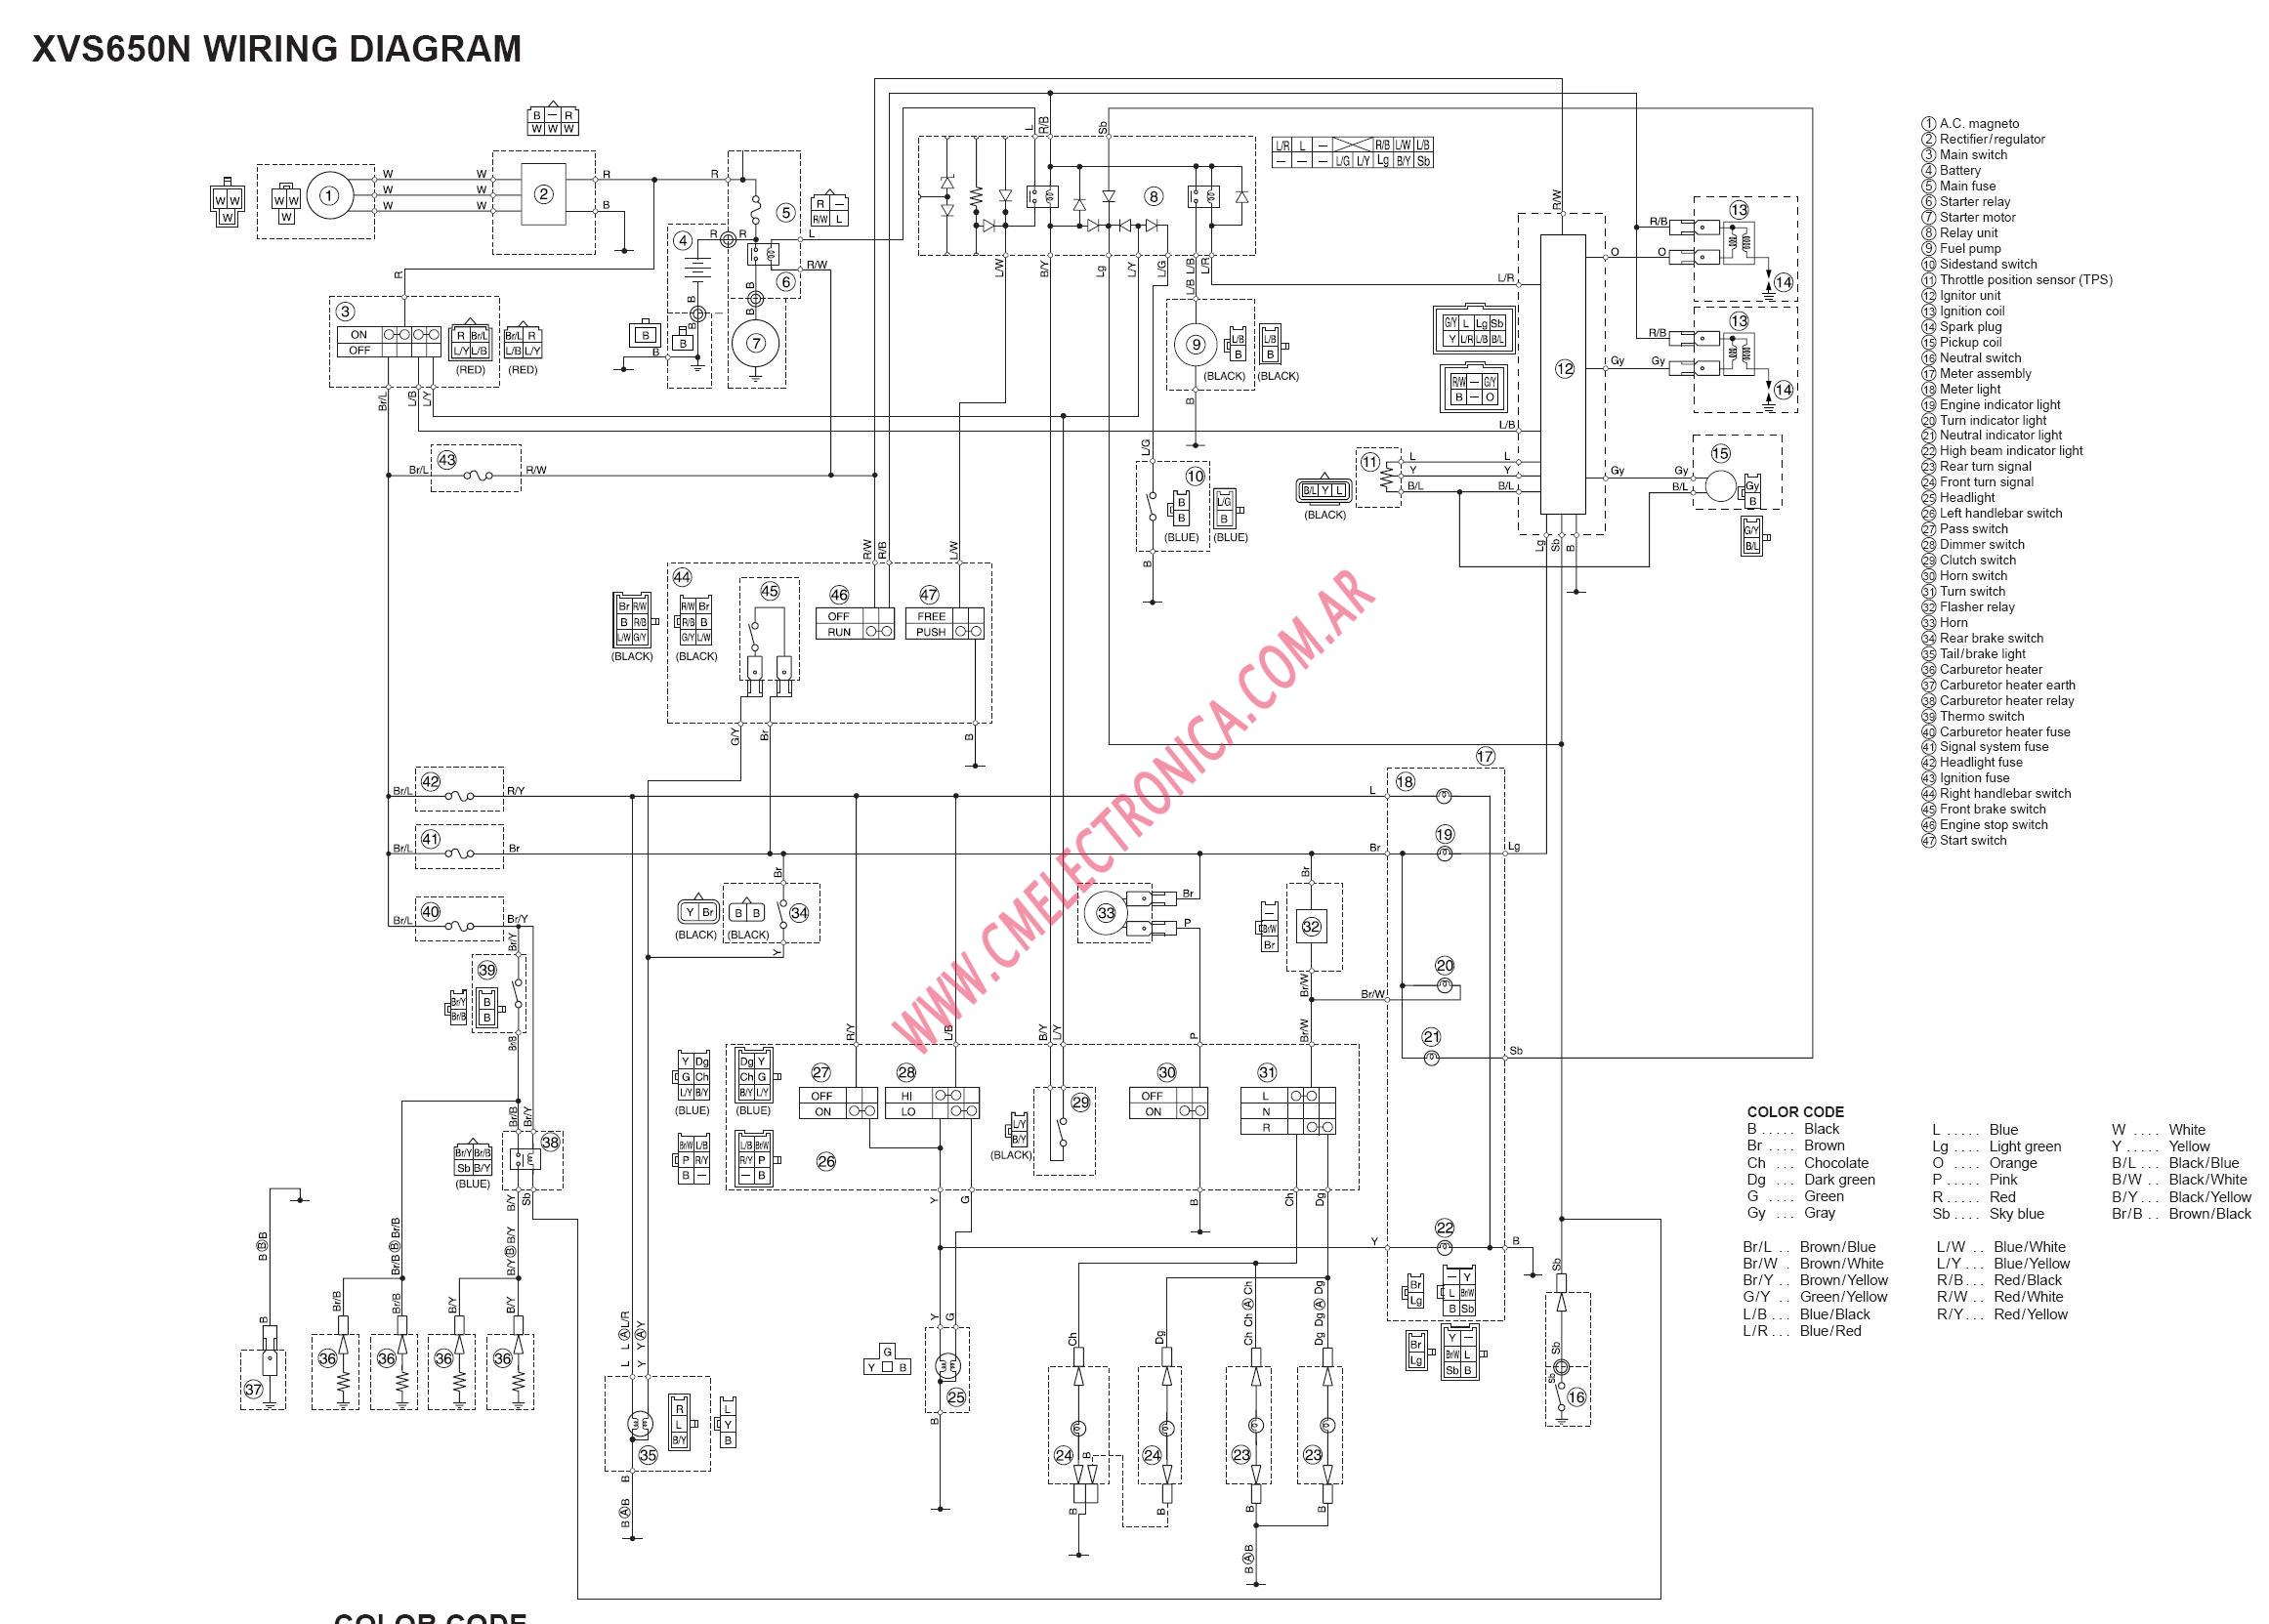 yamaha dragstar xvs650 2000 wiring diagram for 2007 gsxr 600 the wiring diagram readingrat net 2000 yamaha yzf600r wiring diagram at soozxer.org